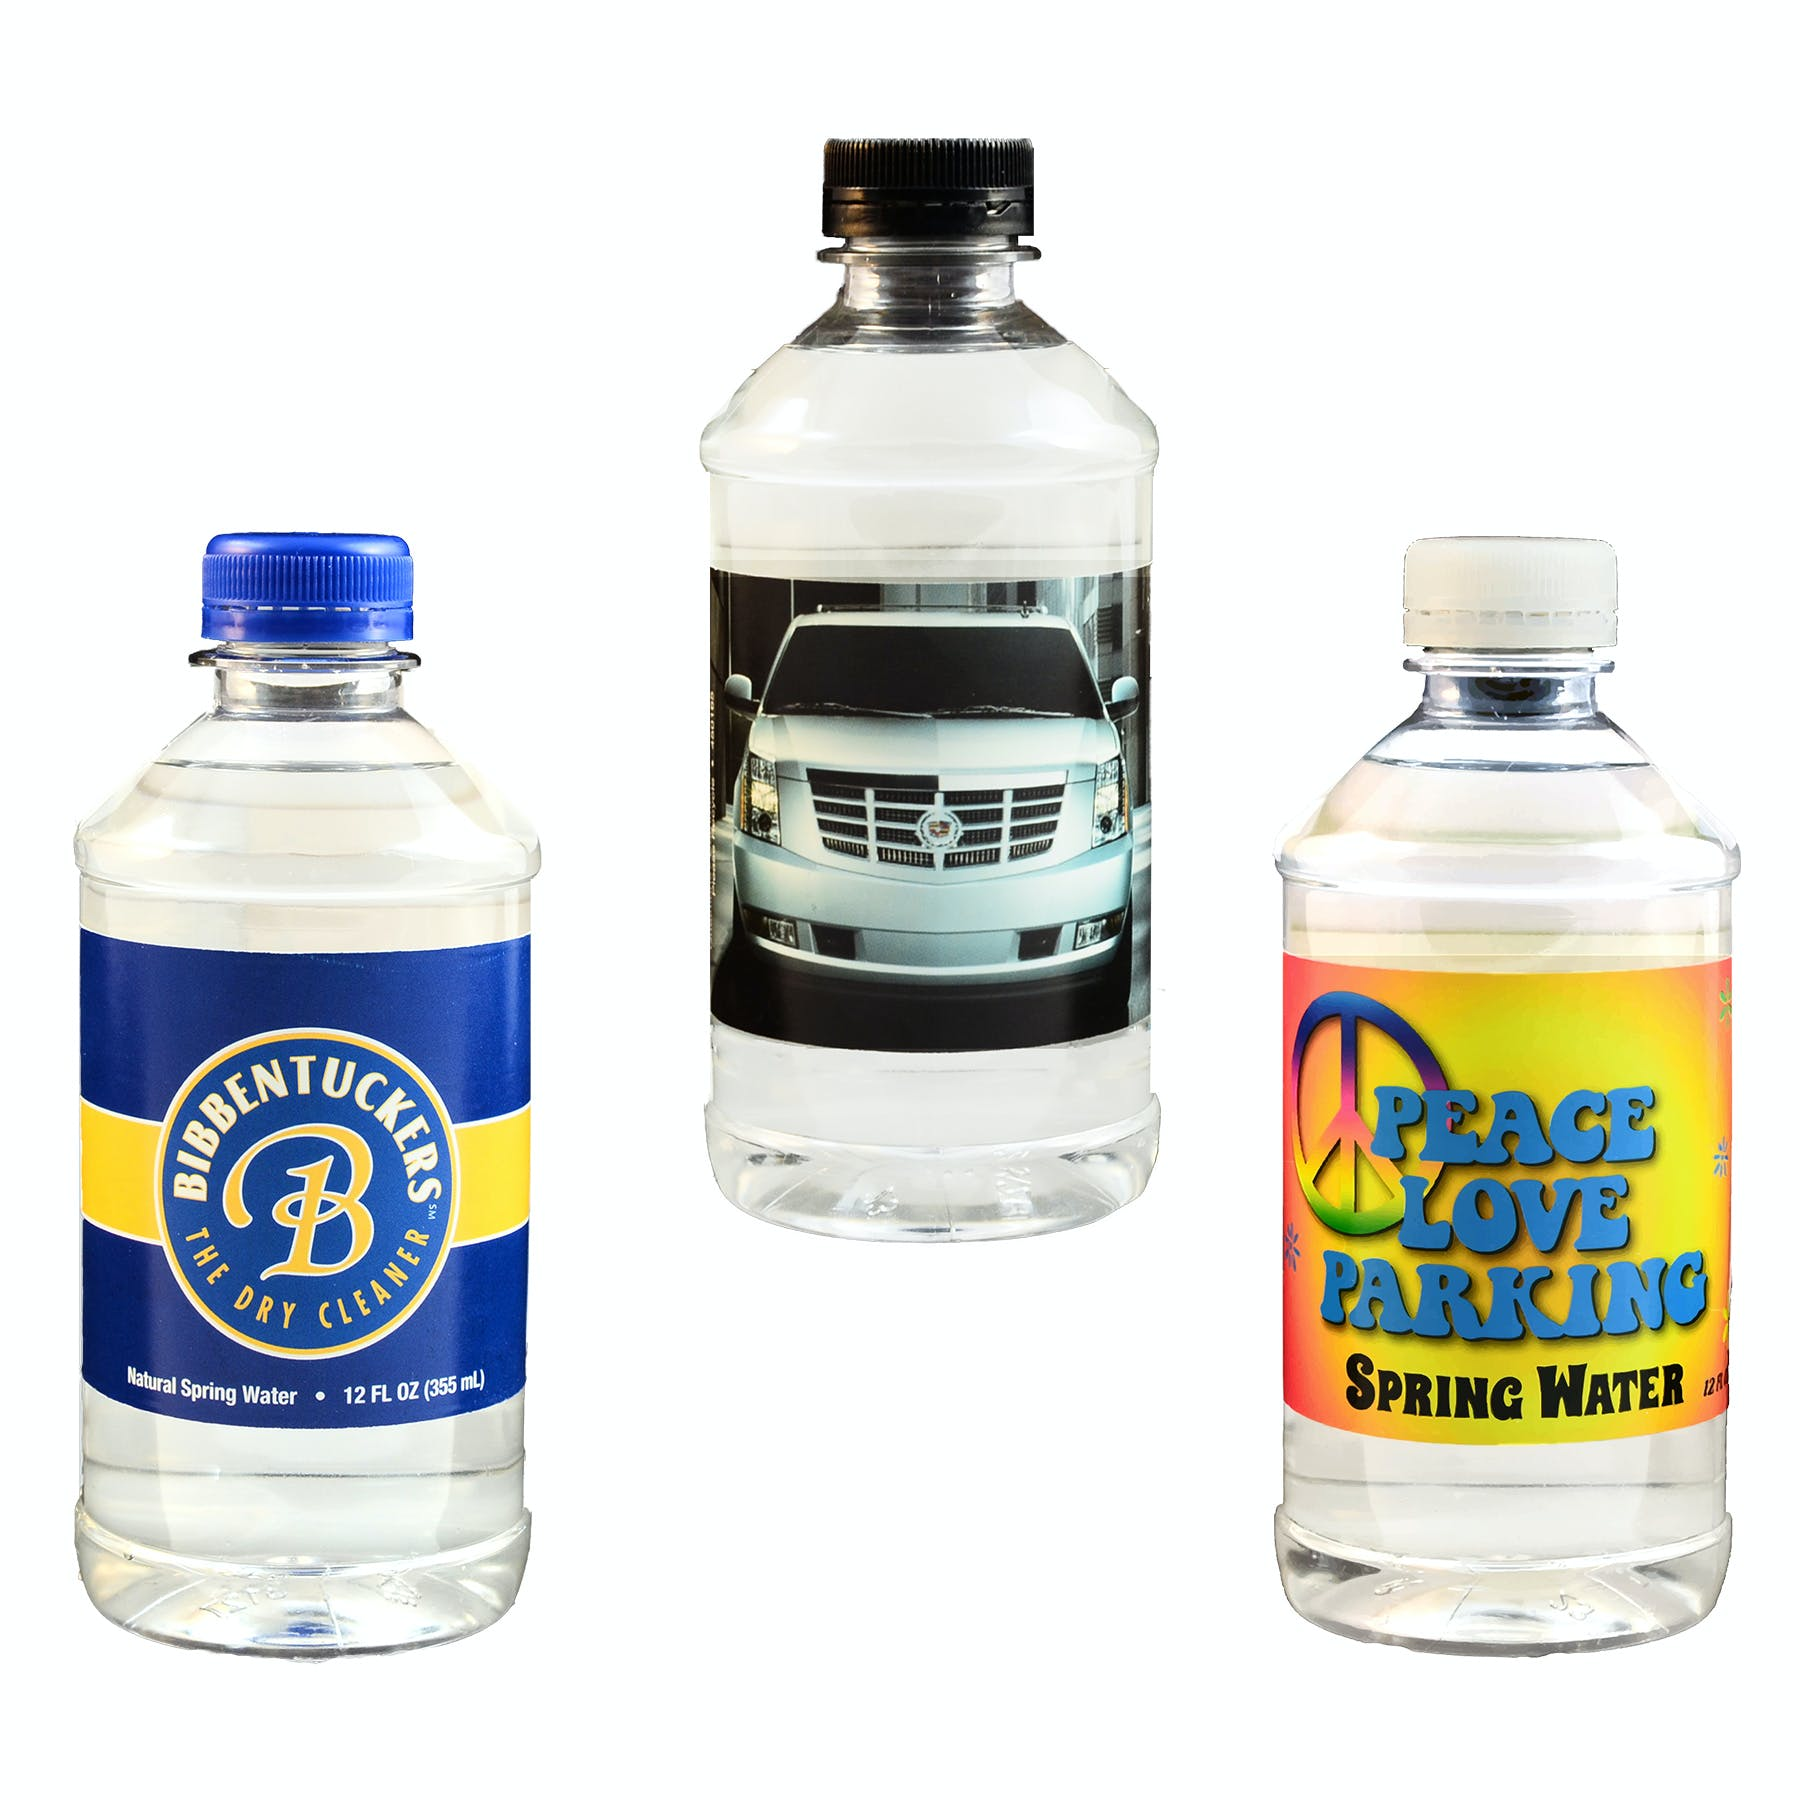 12 Oz. Custom Label Bottled Water (Item # NFNQR-HZJWS) Plastic bottle sold by InkEasy